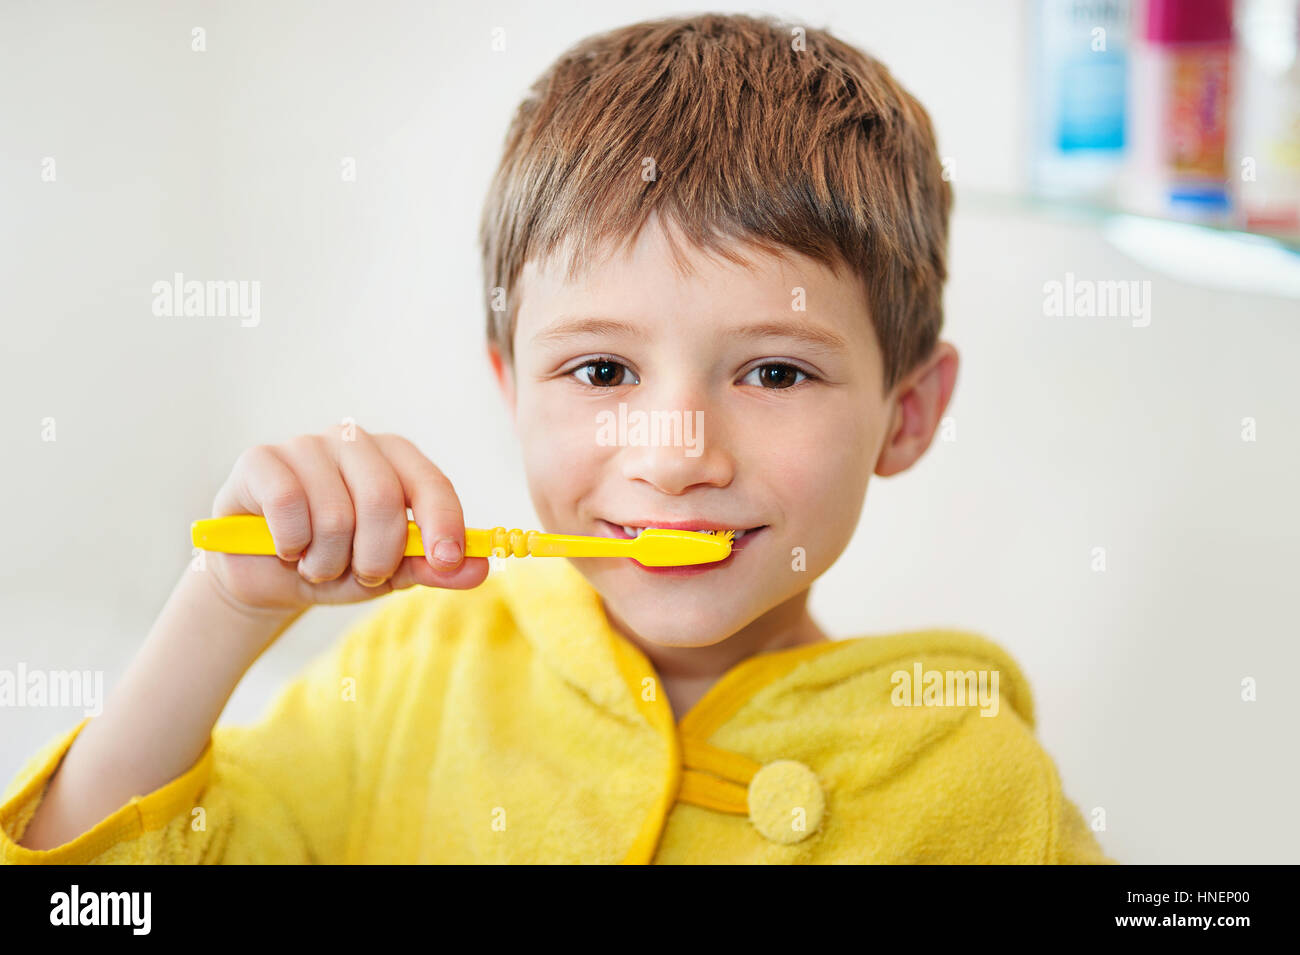 Boy brushing his teeth in bathtub, smiling, light grey background Stock Photo